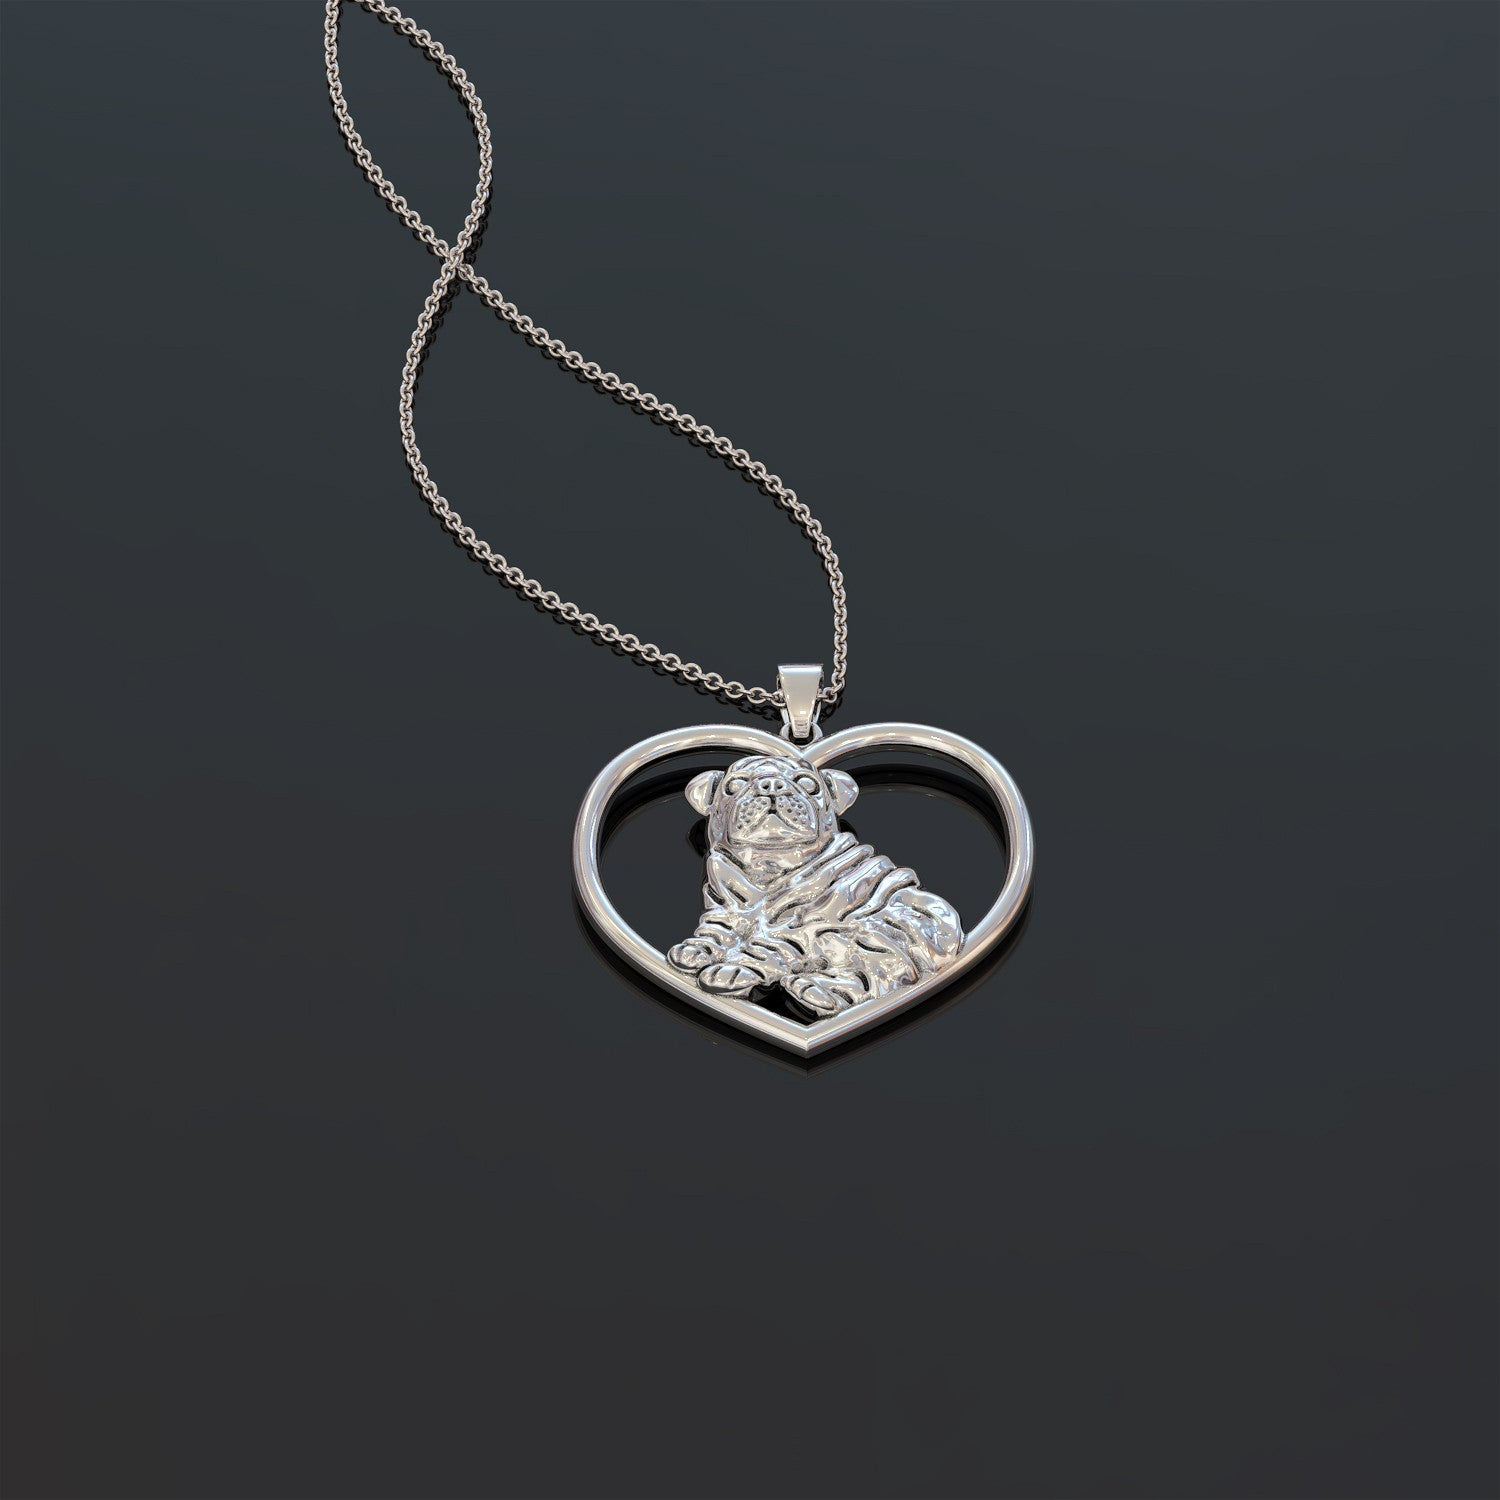 Bully Heart Necklace